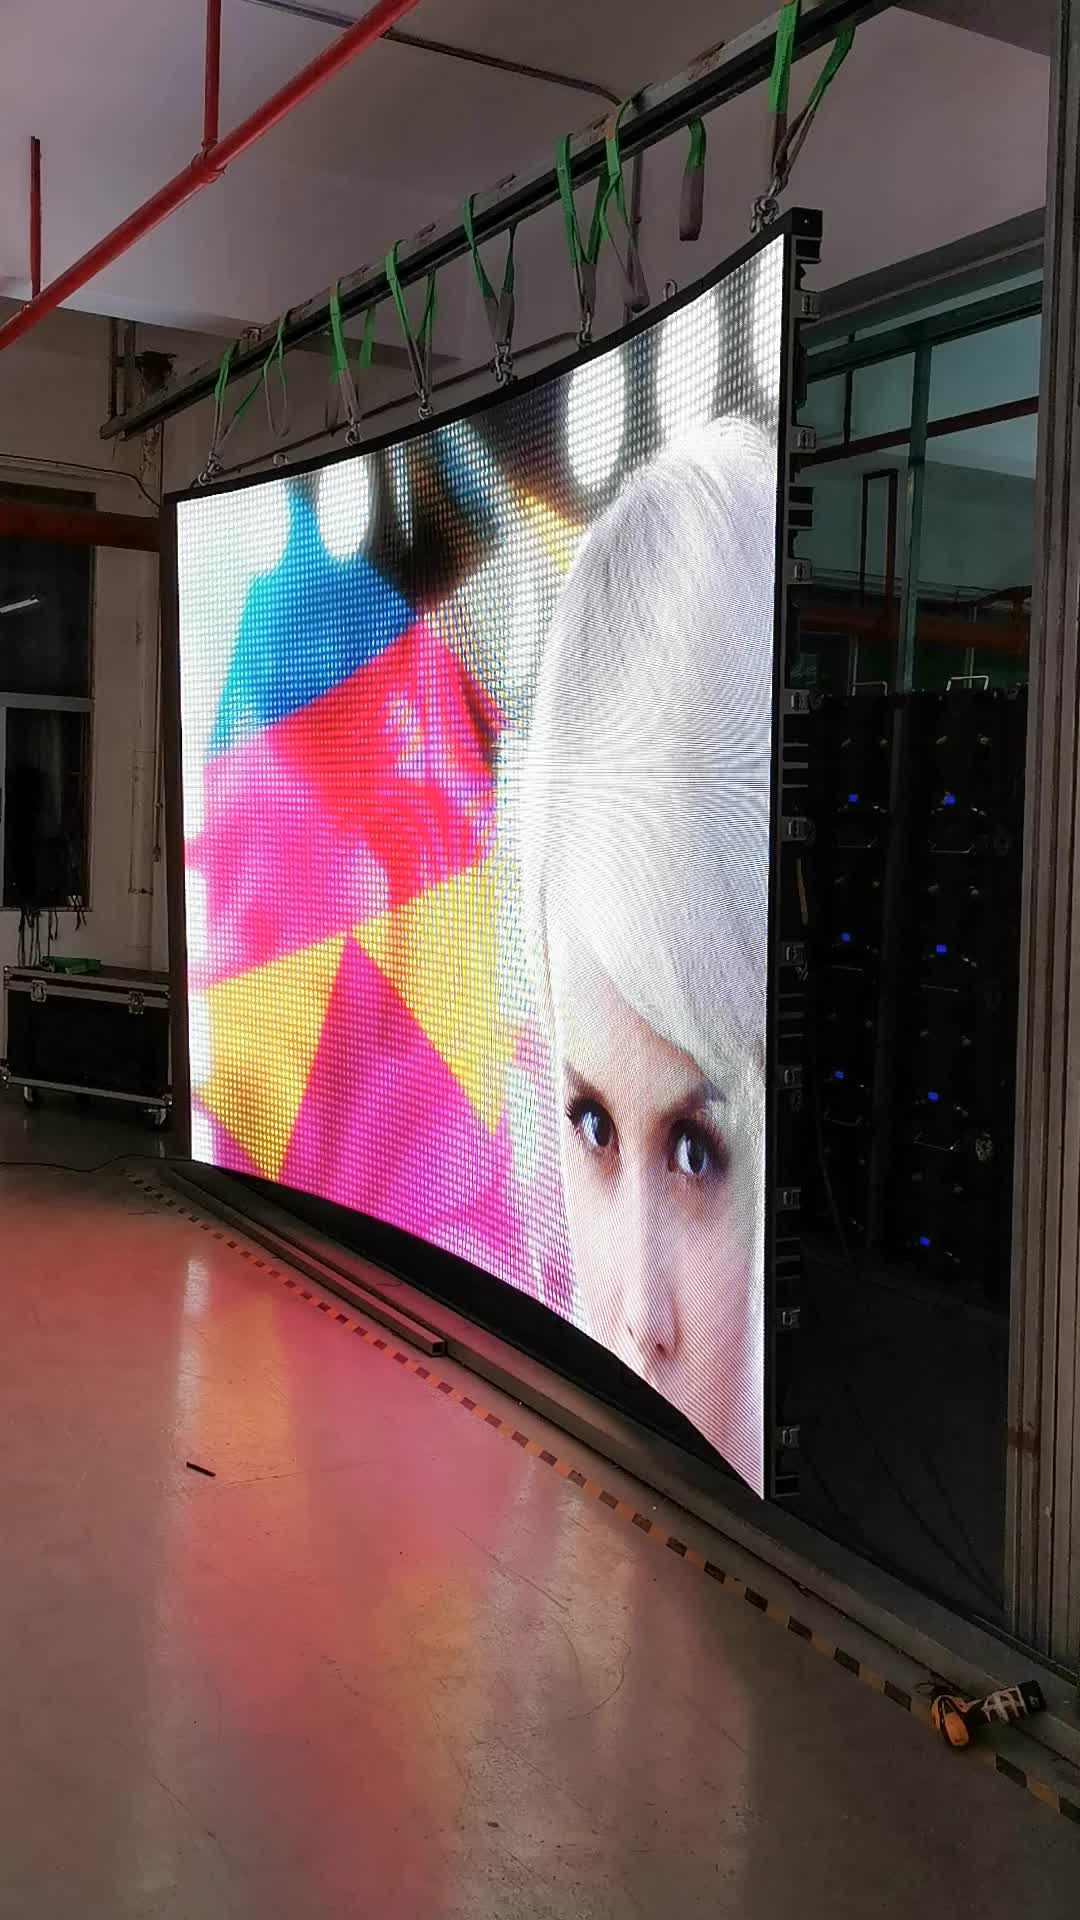 p2.6 pixel pure back smd led full color indoor 4K curved monitor